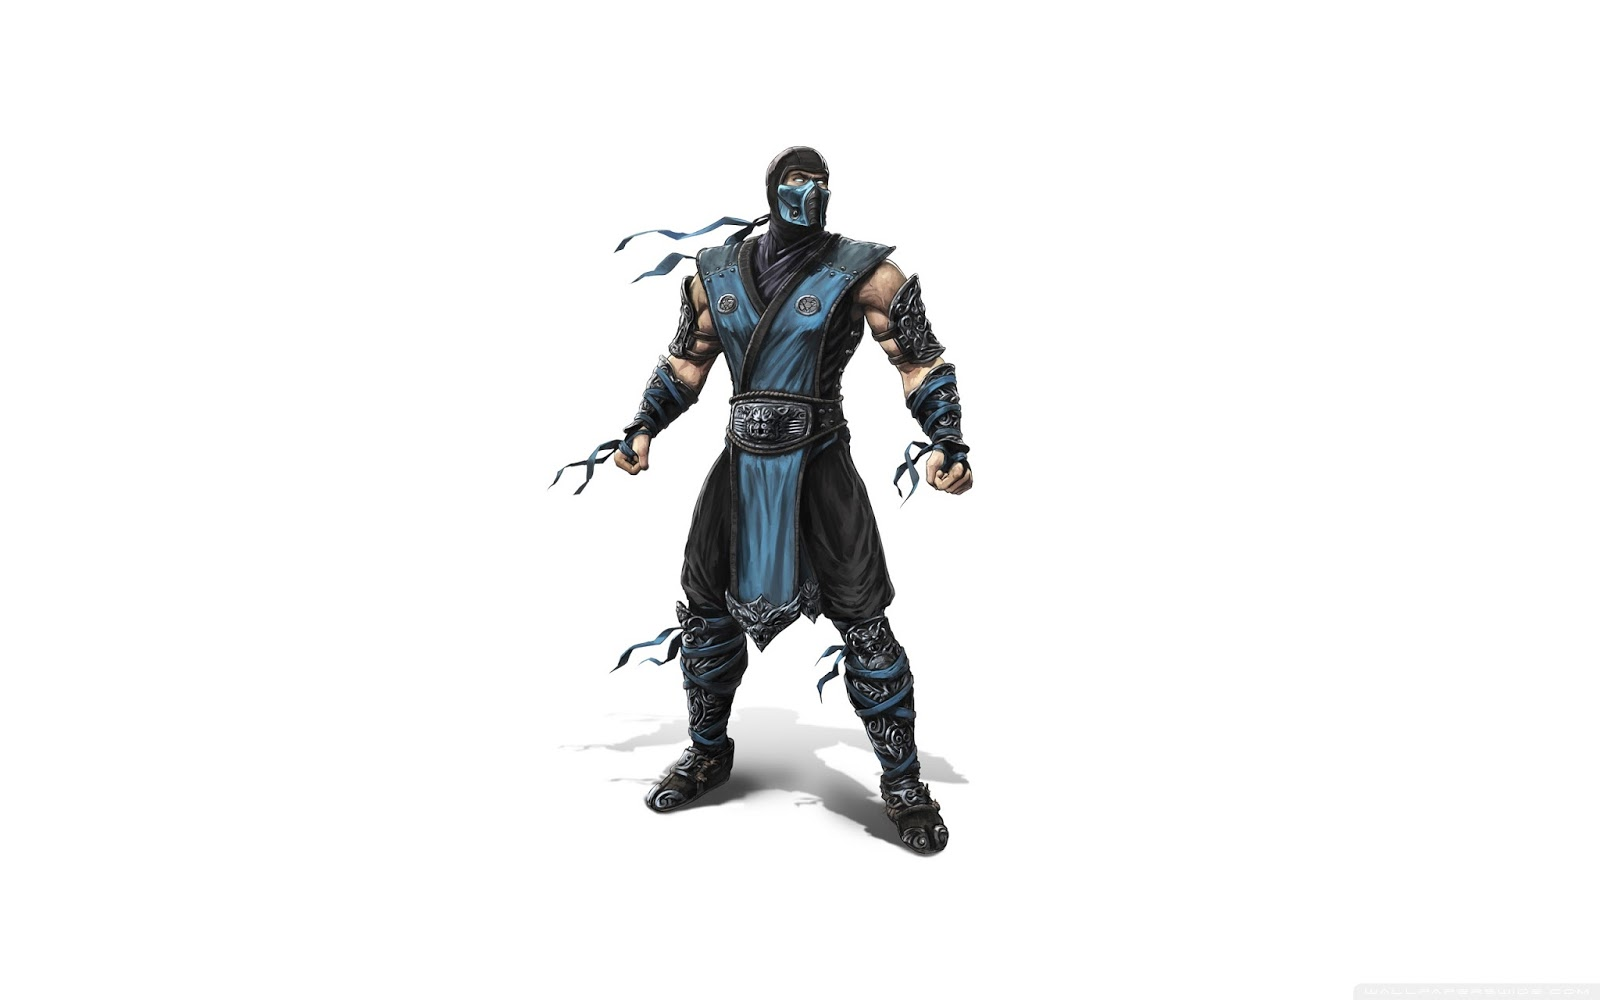 Wallpapers Hd 21 Wallpapers De Mortal Kombat